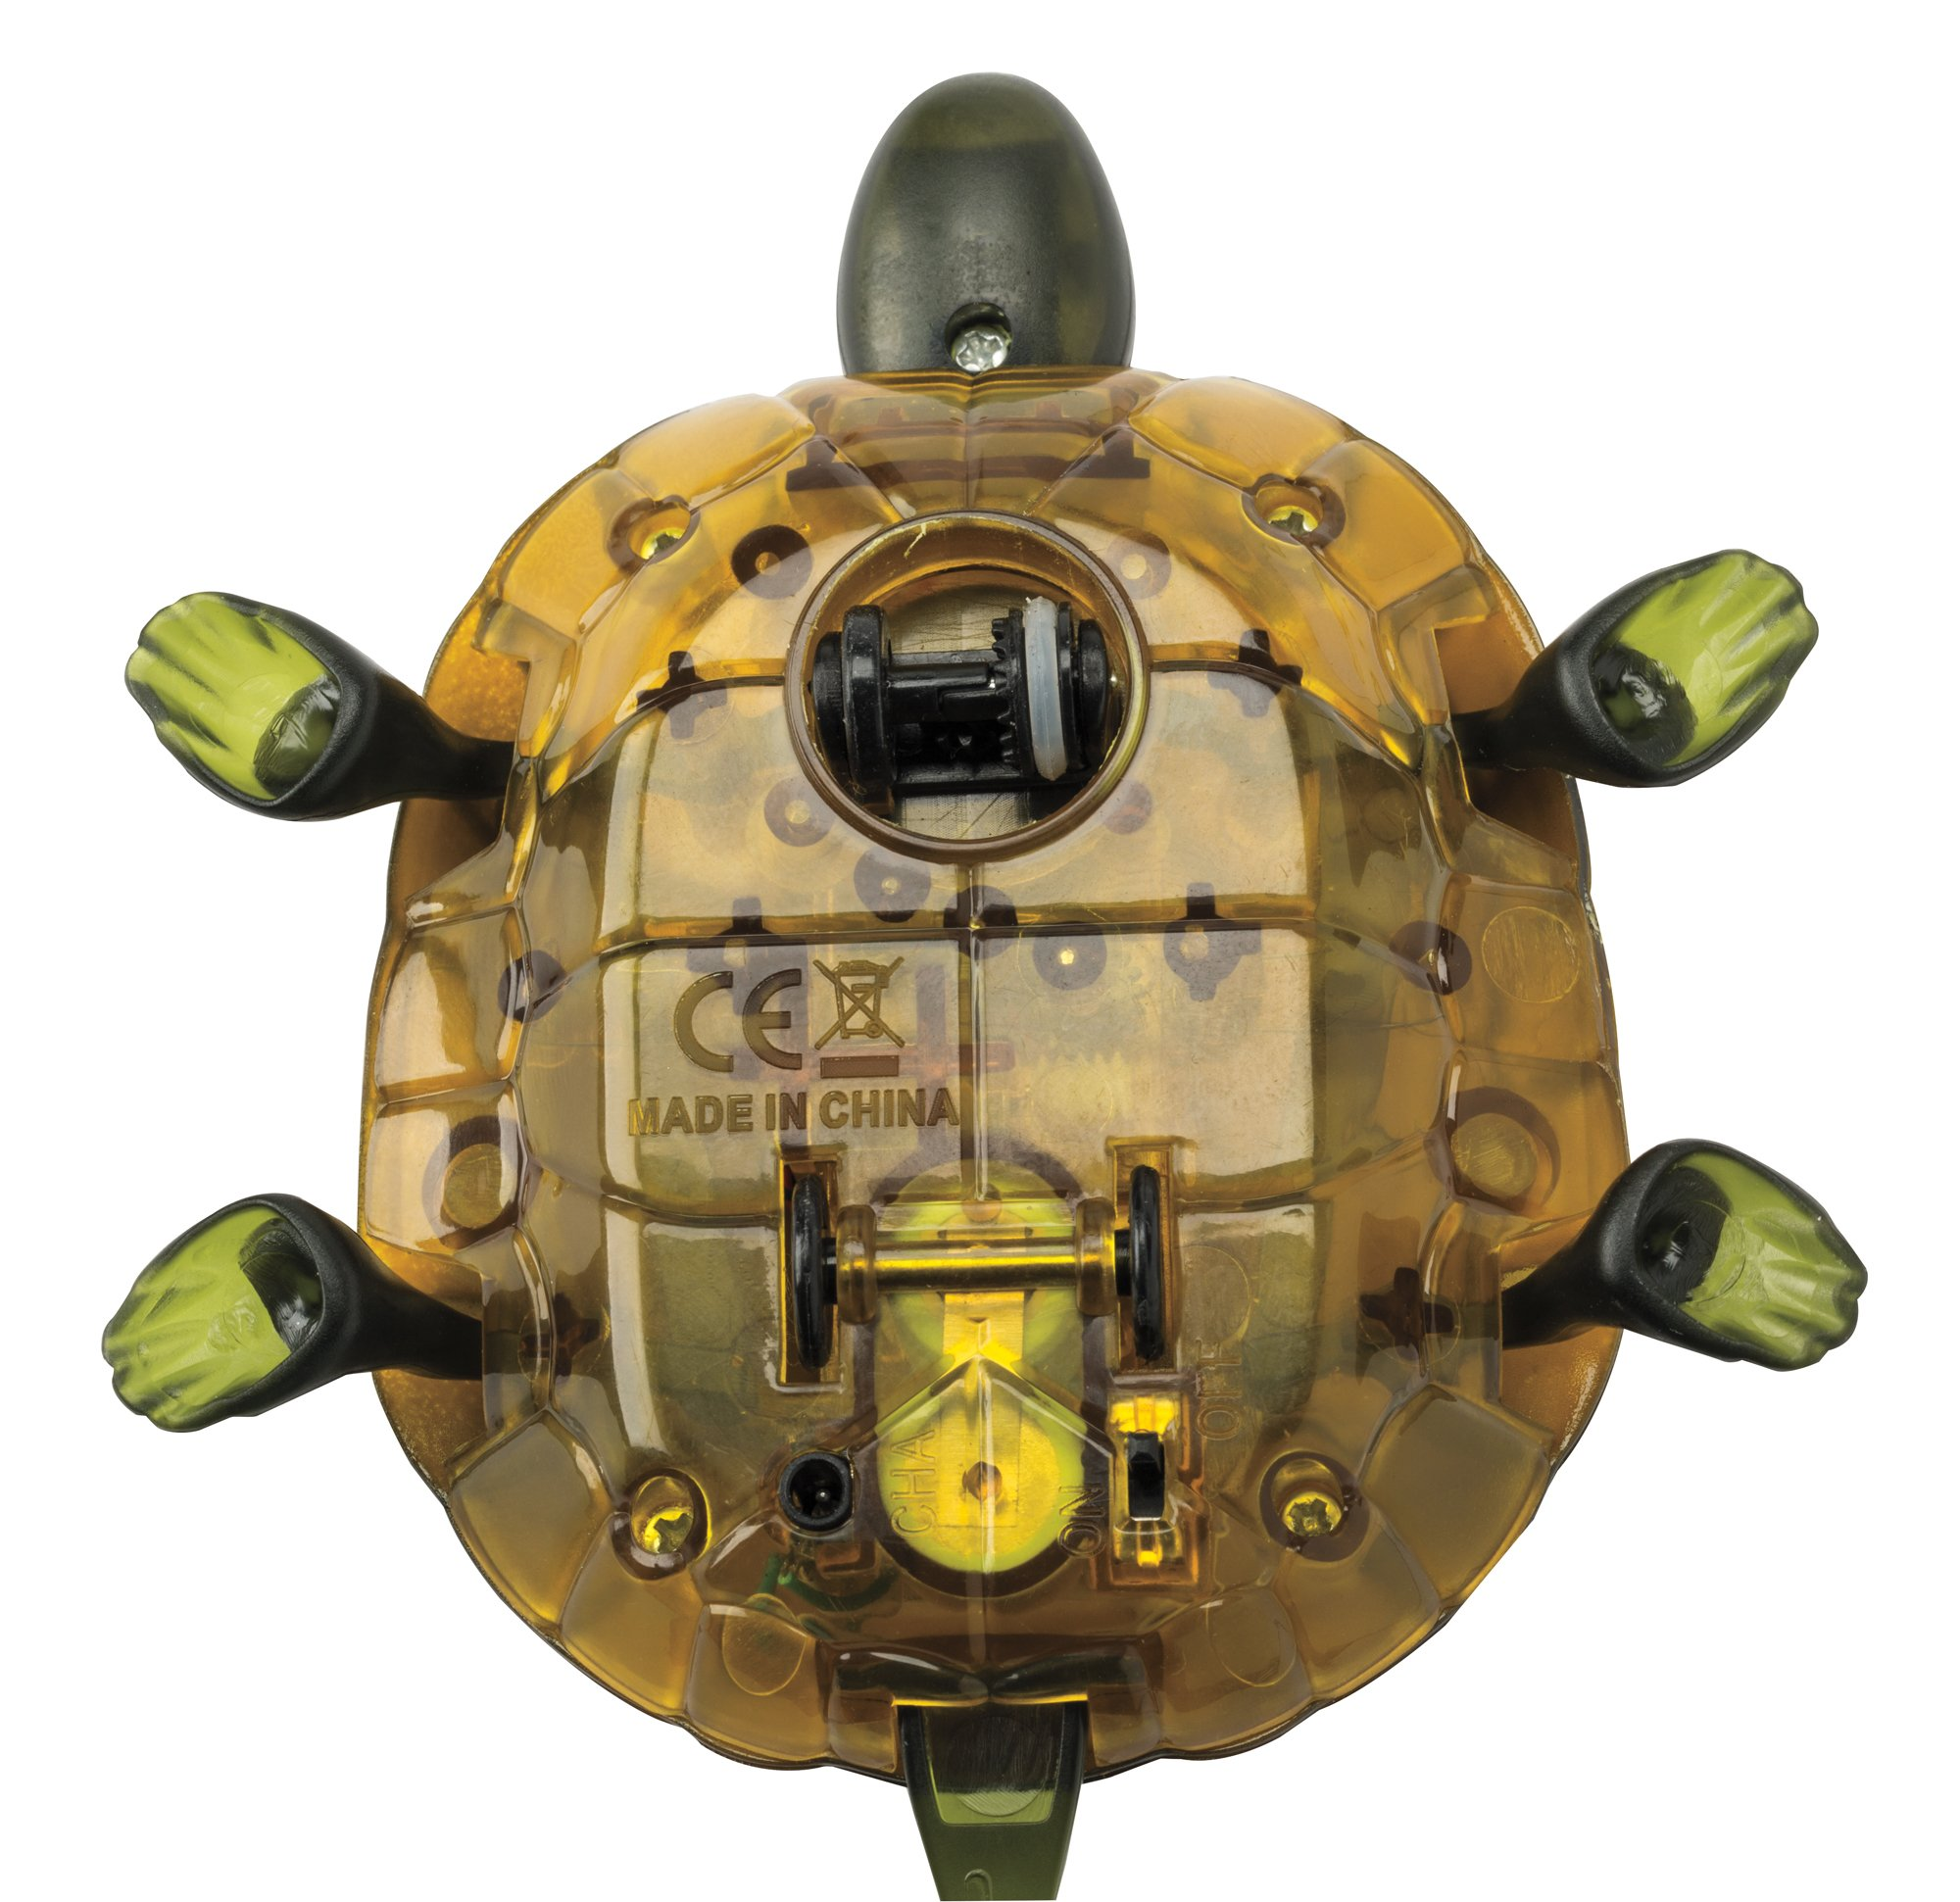 The Paragon Remote Control Turtle - RC Animal Toy, Turtle Toy for Kids and Adults by The Paragon (Image #8)